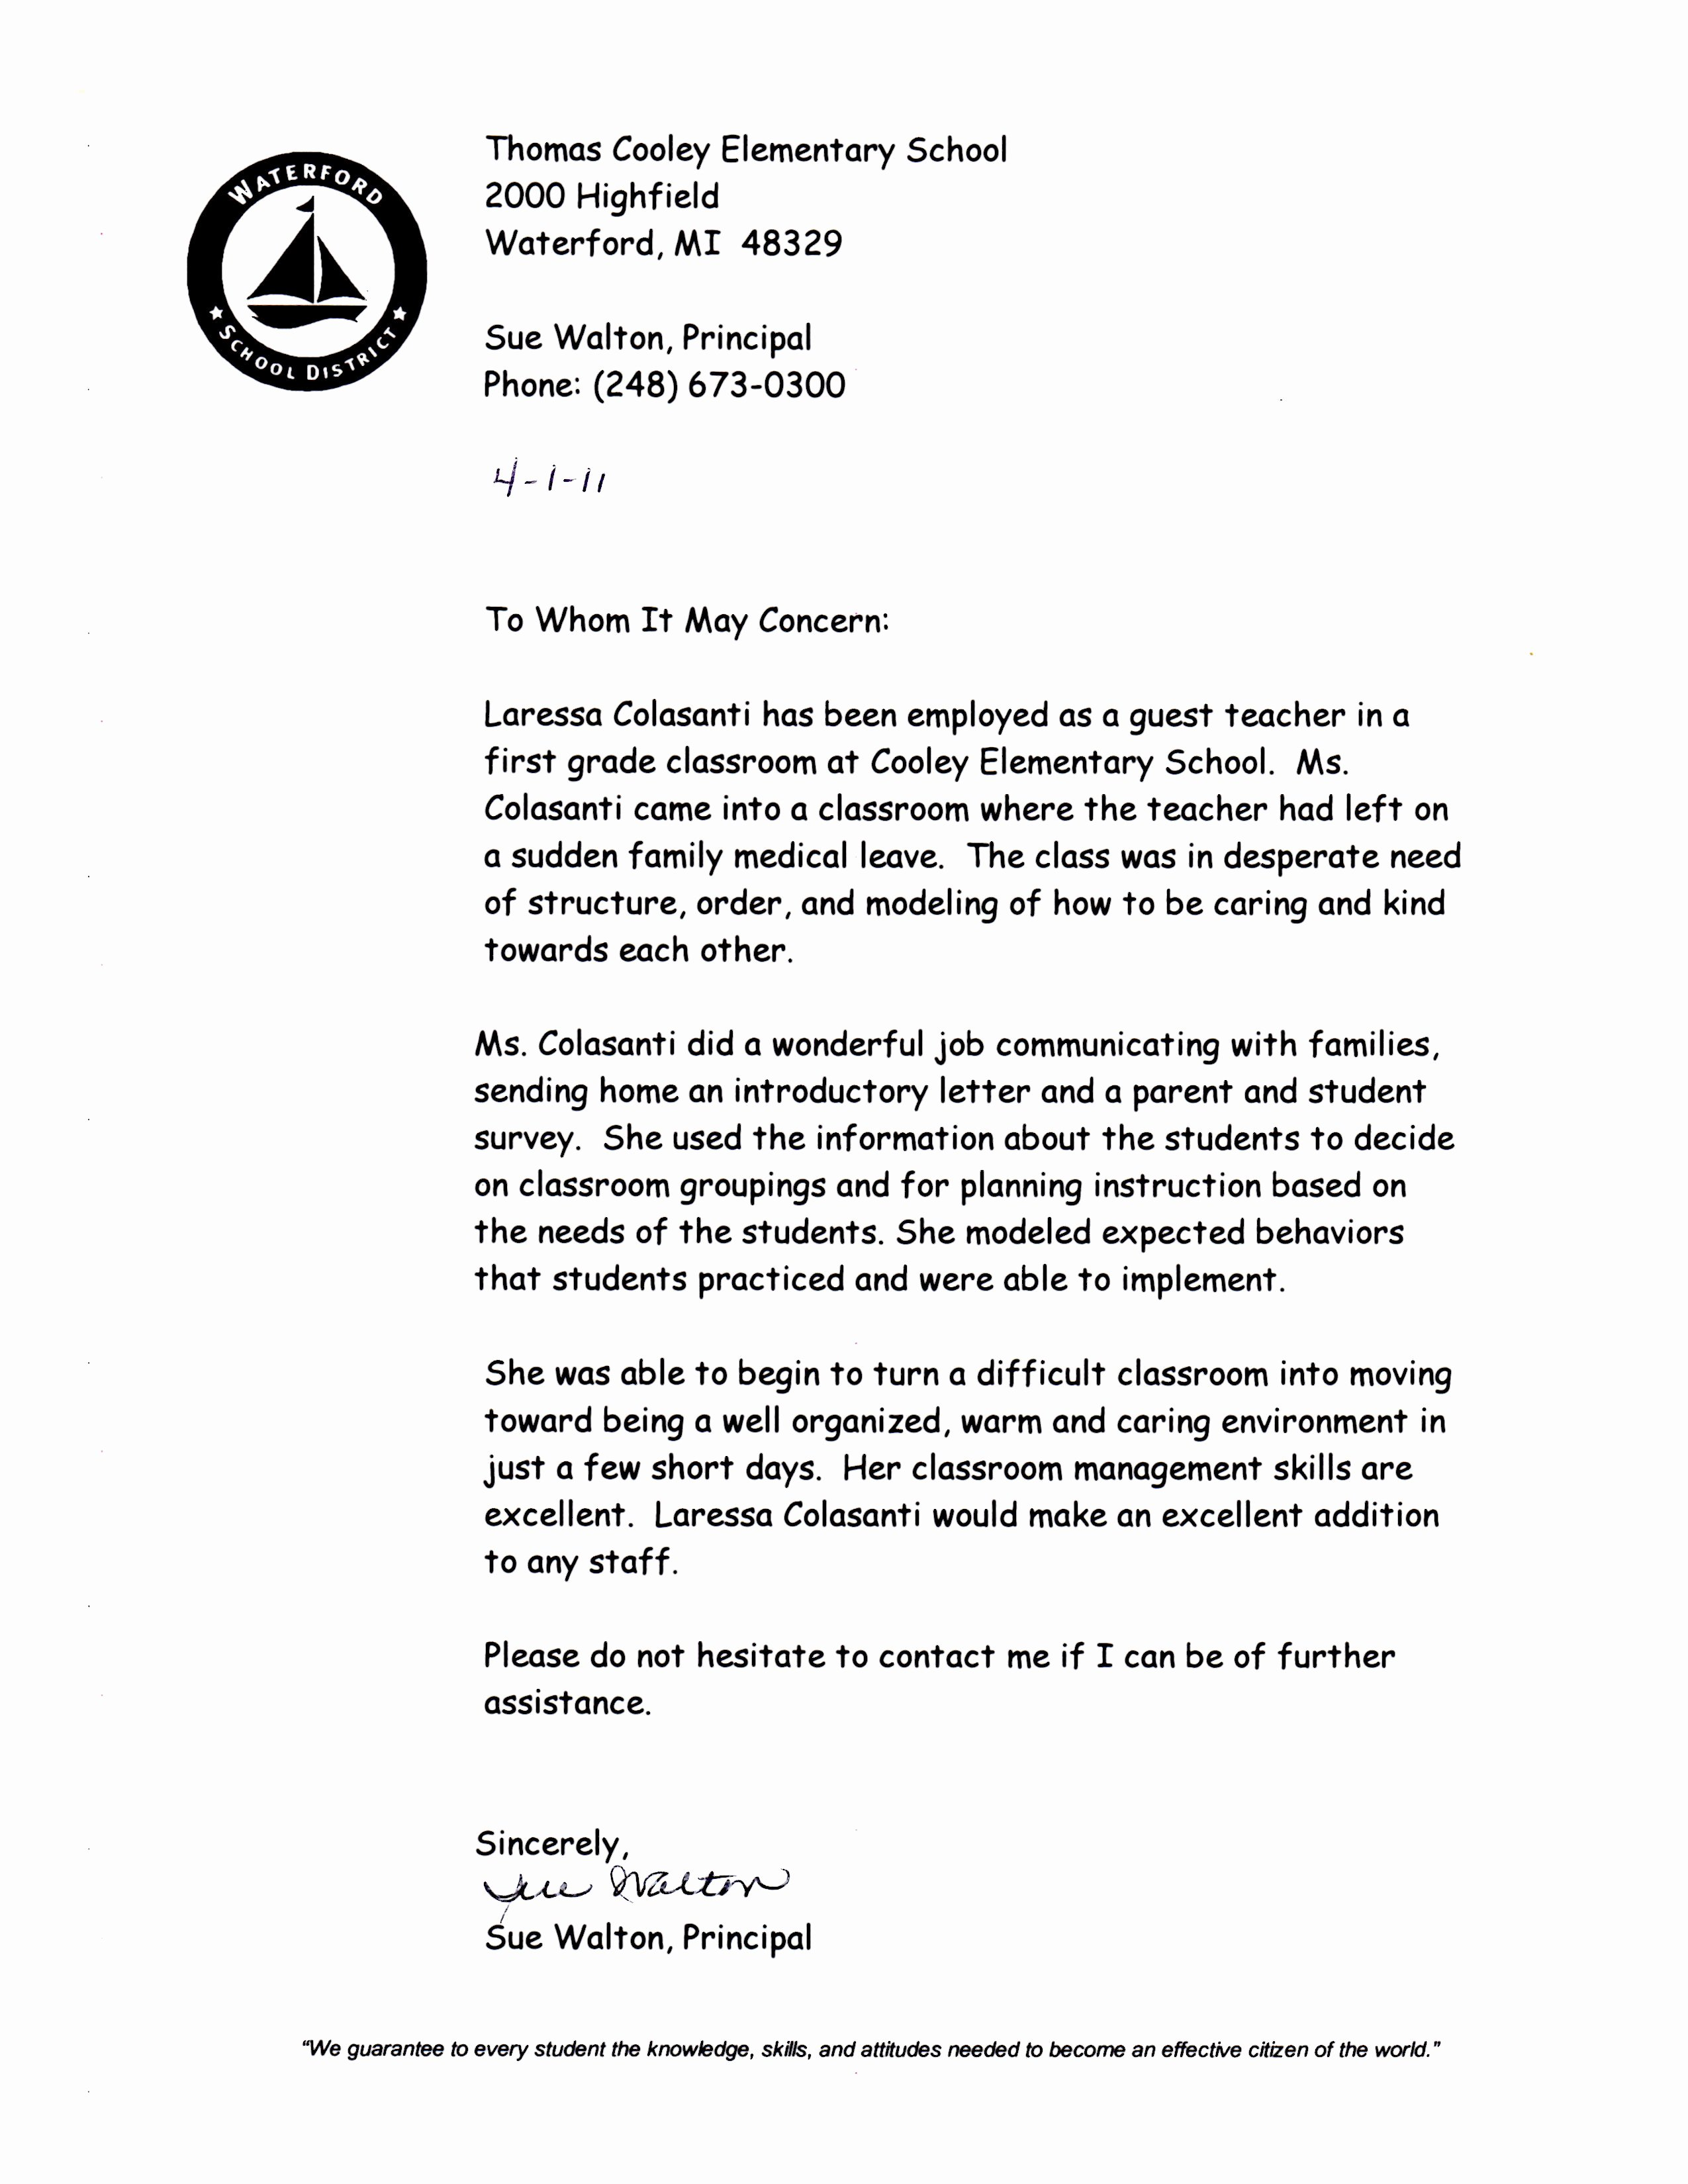 Recommendation Letter for Substitute Teacher New My Field Experiences Laressa M Colasanti